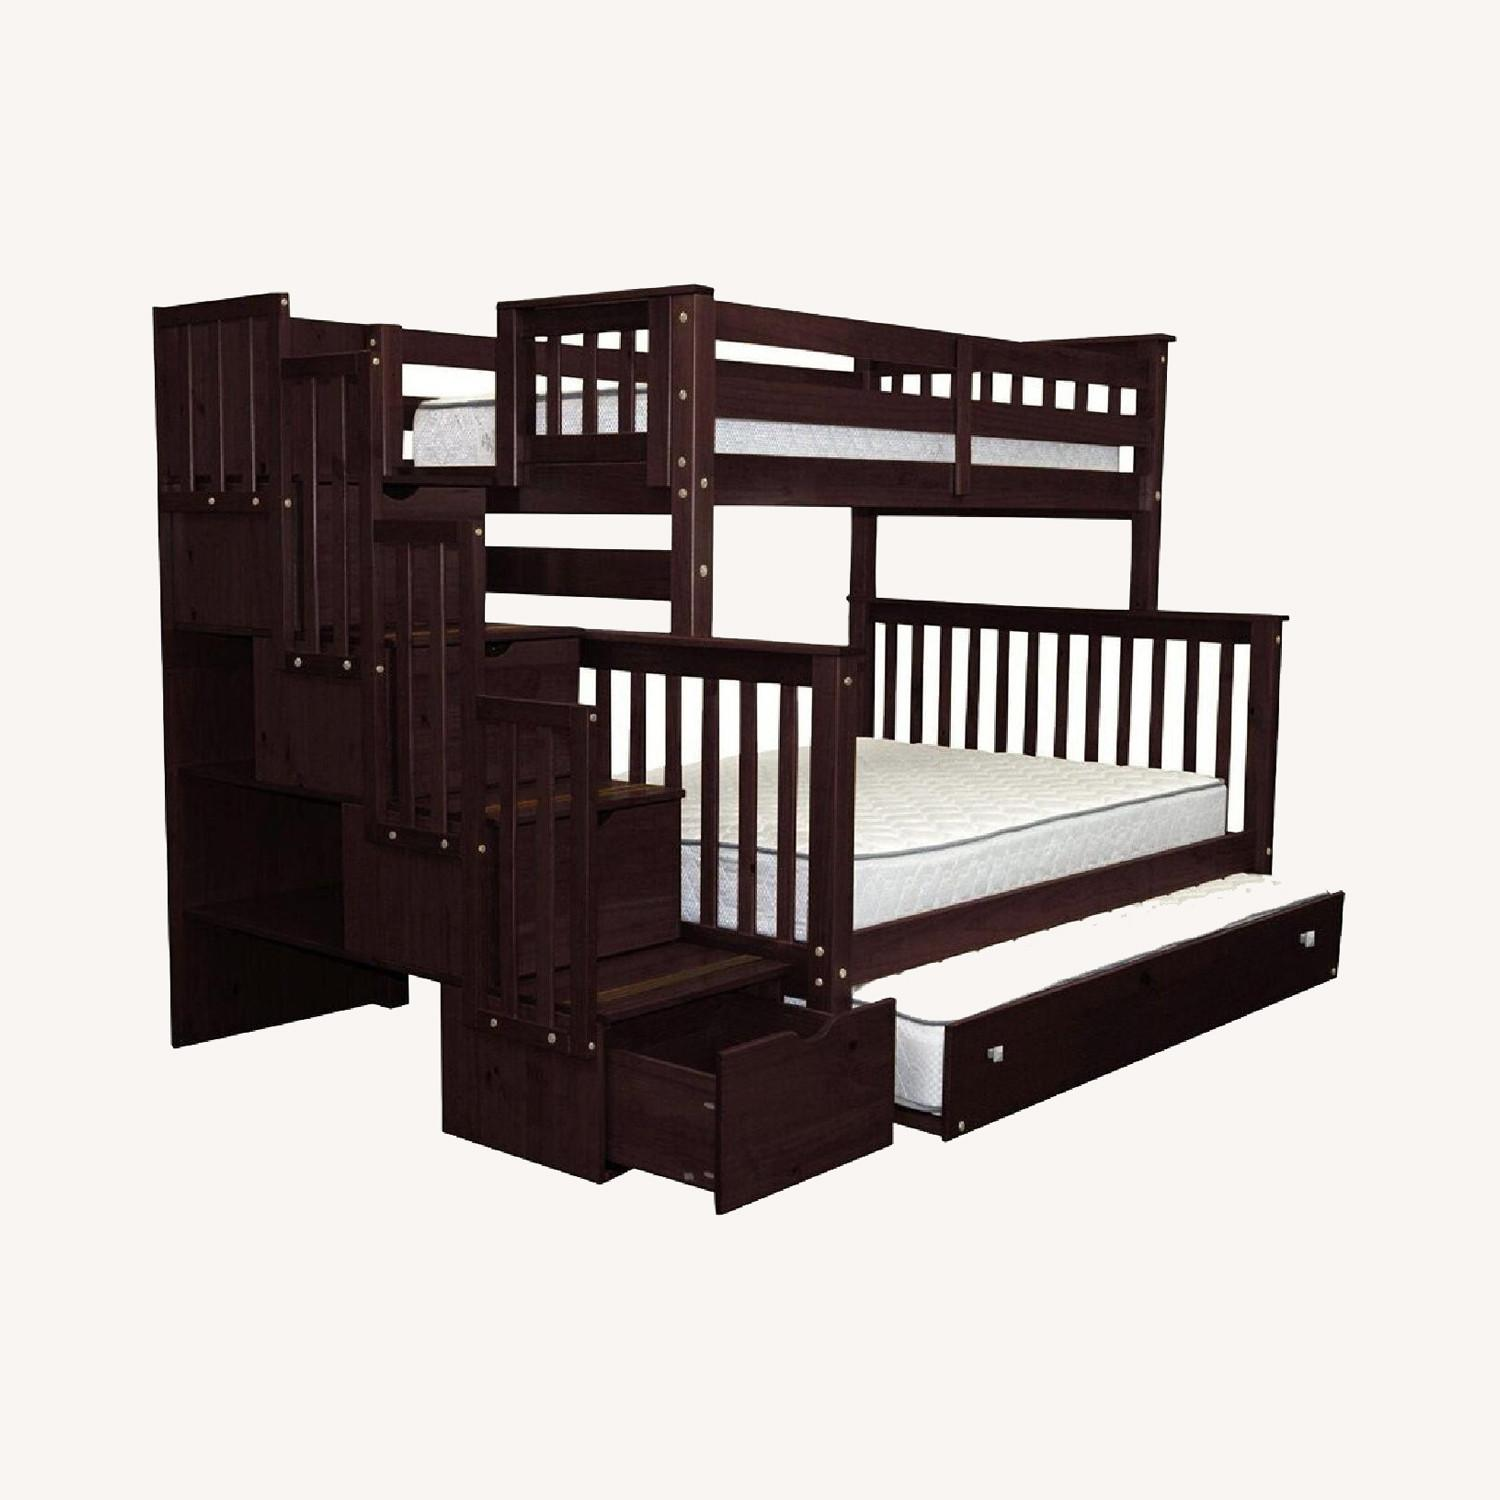 Wayfair Solid Wood Bunk Bed with Trundle, Storage - image-0